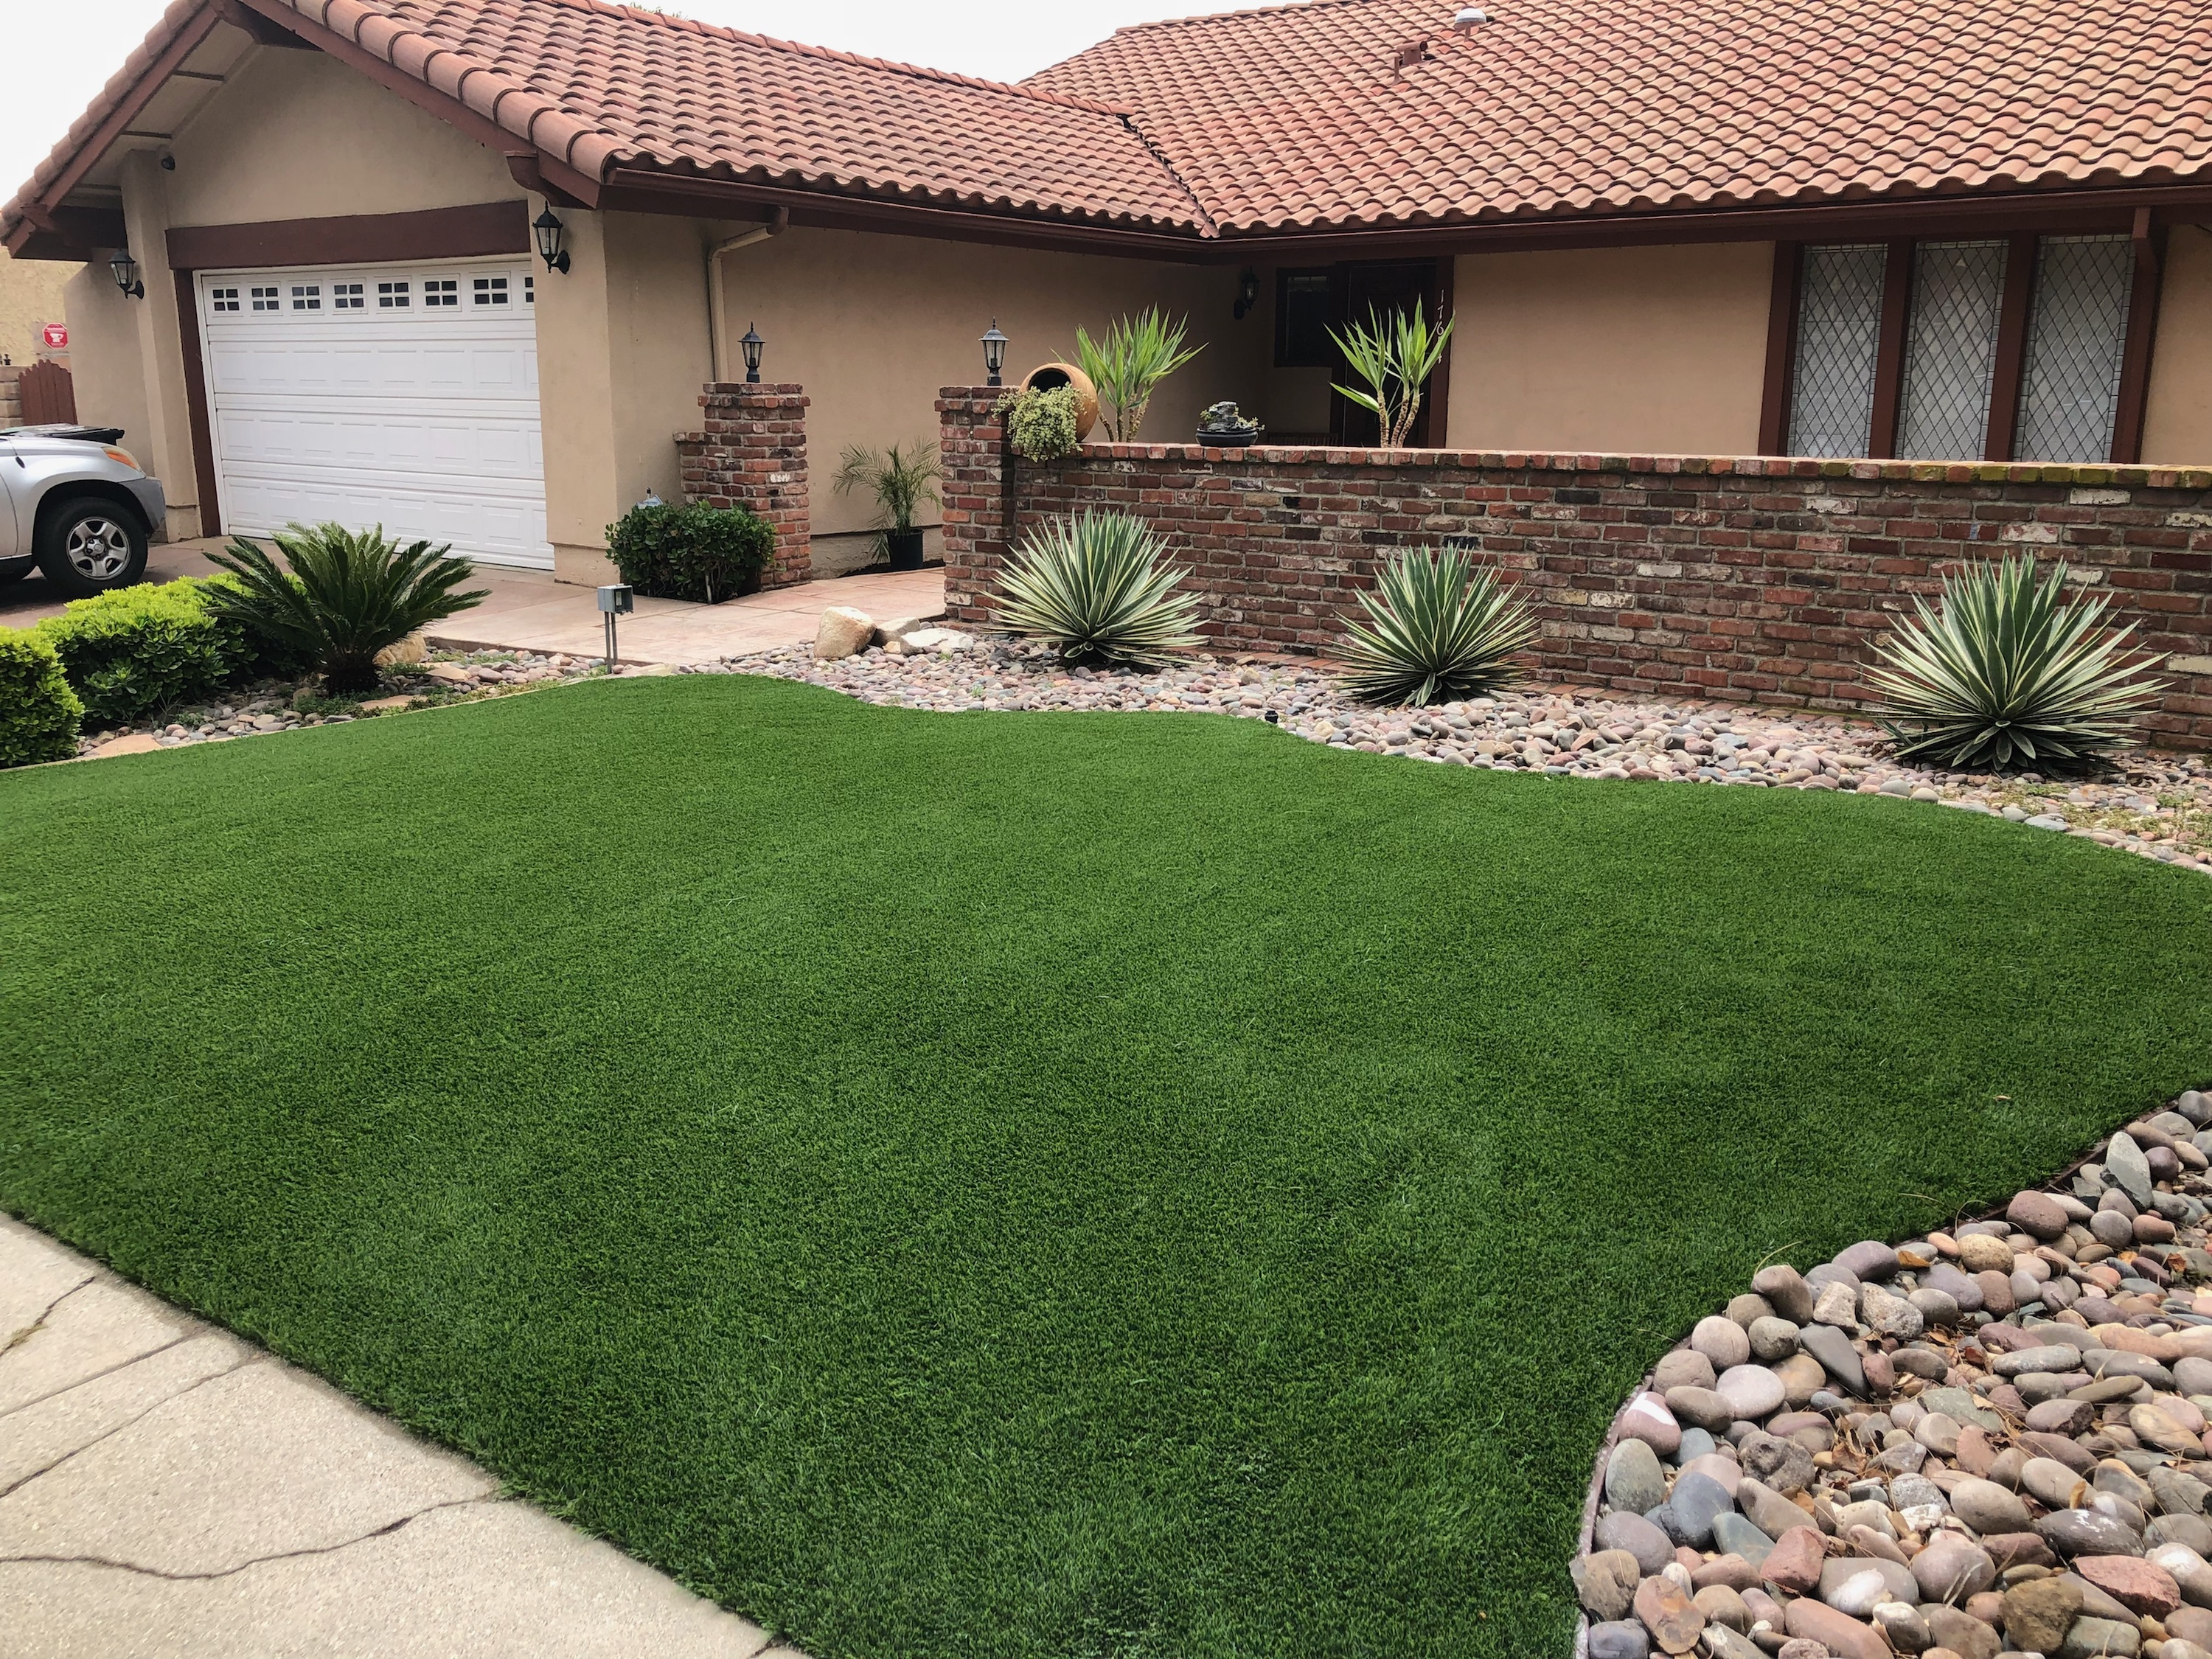 Grass turf for life1